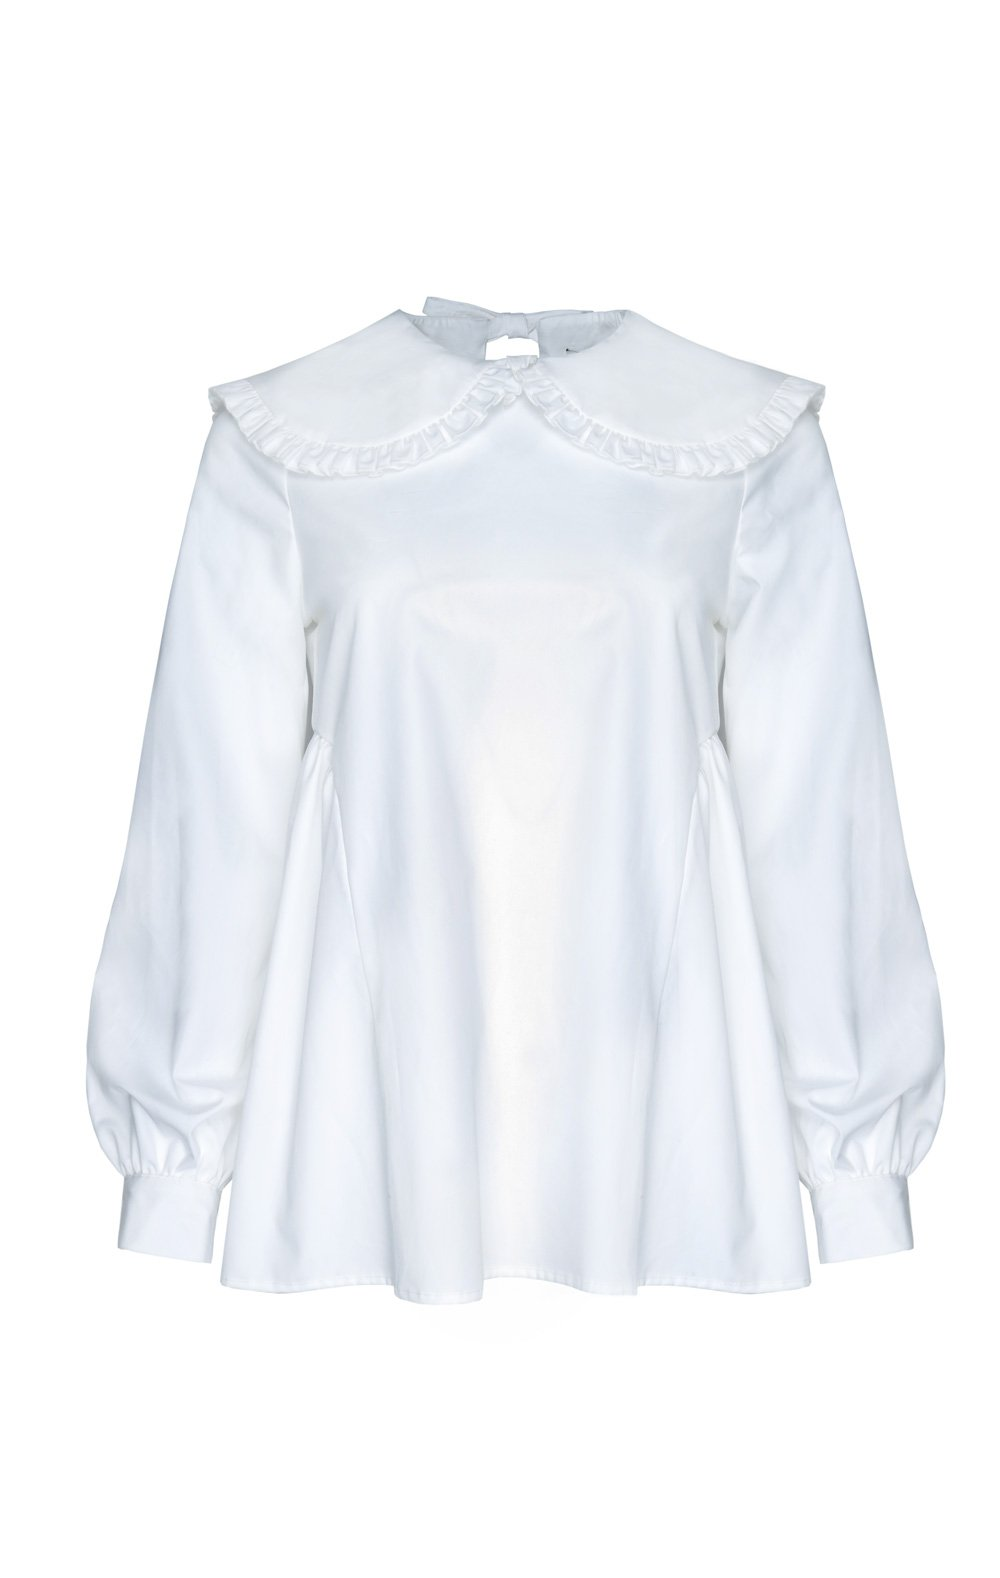 Laurie Top in White by Sandy Liang - 1